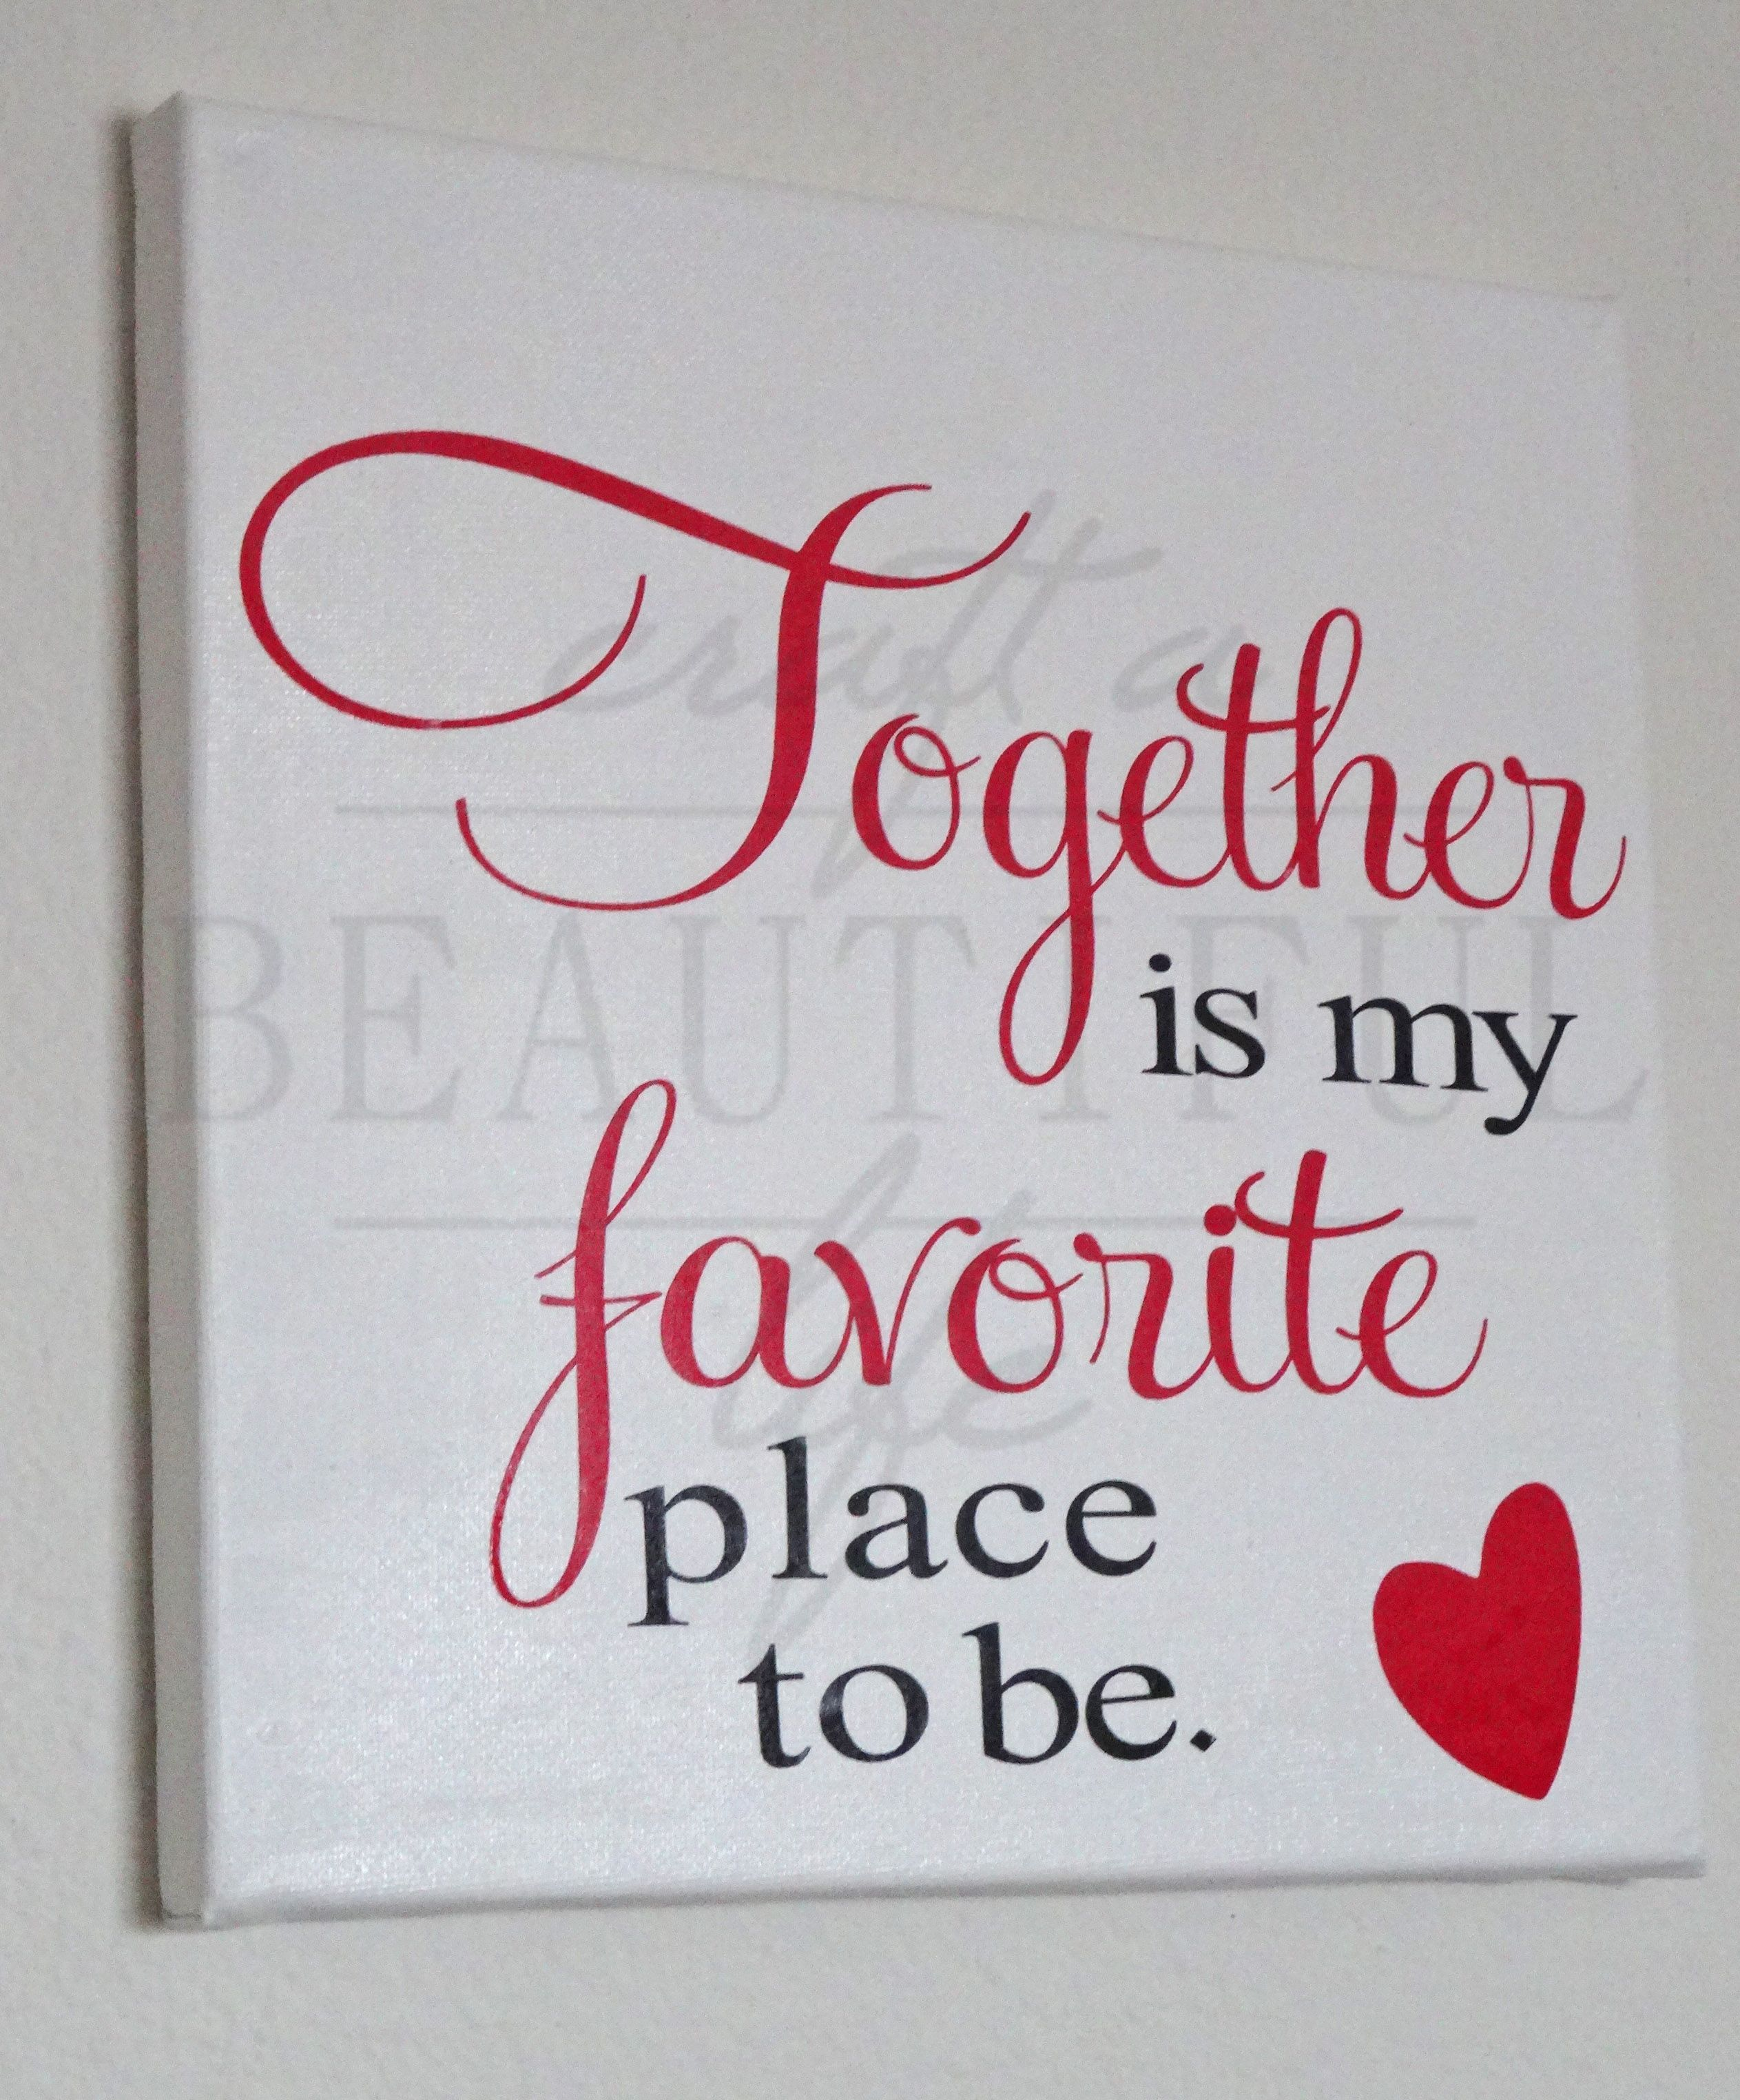 Together is my favorite place to be, Home Decor Canvas http://www.craftabeautifullife.etsy.com/